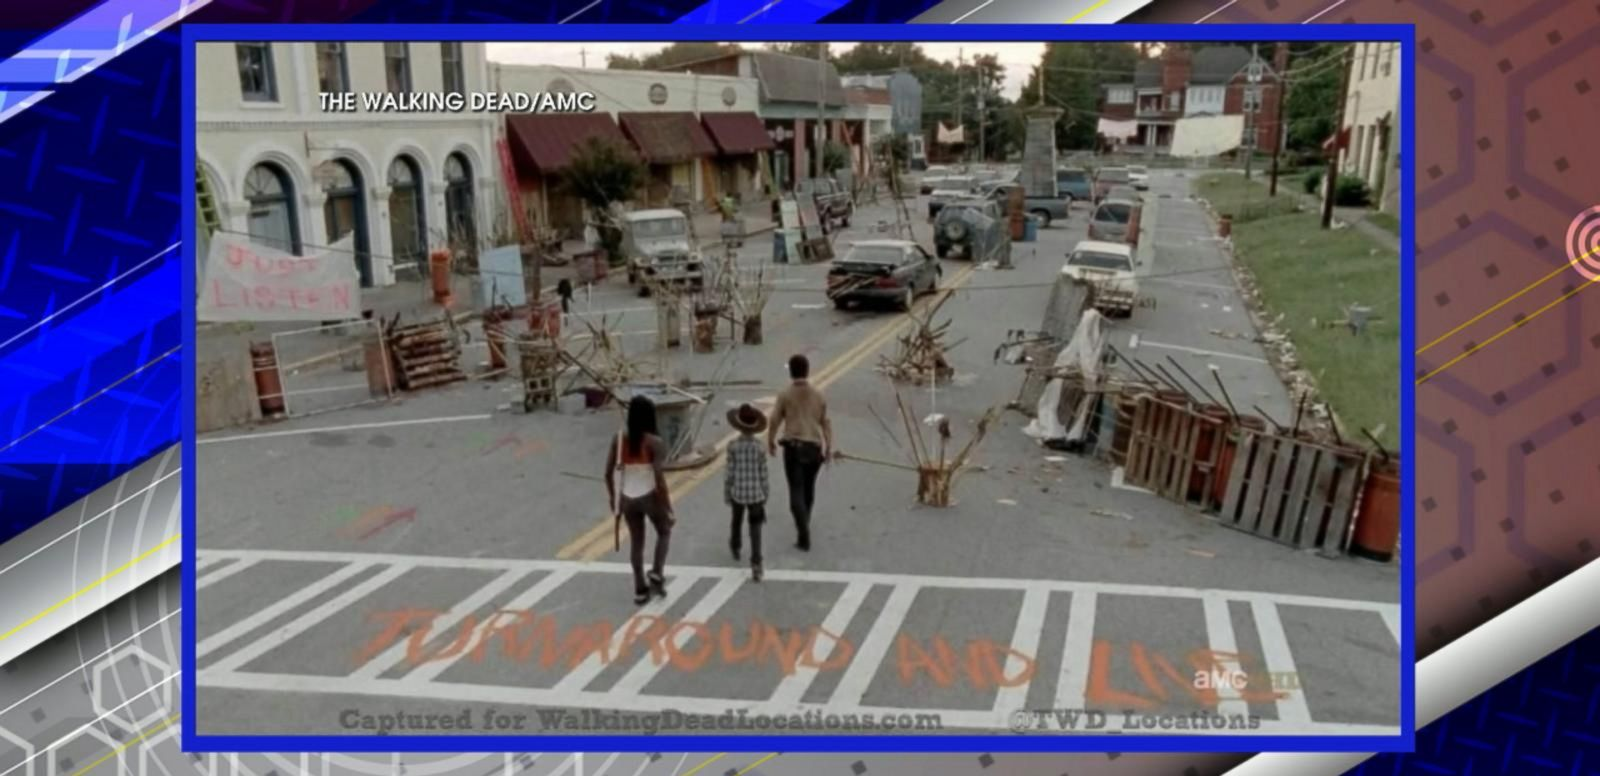 VIDEO: 'Walking Dead' Fans Have Chance to Buy Homes Used in the Show